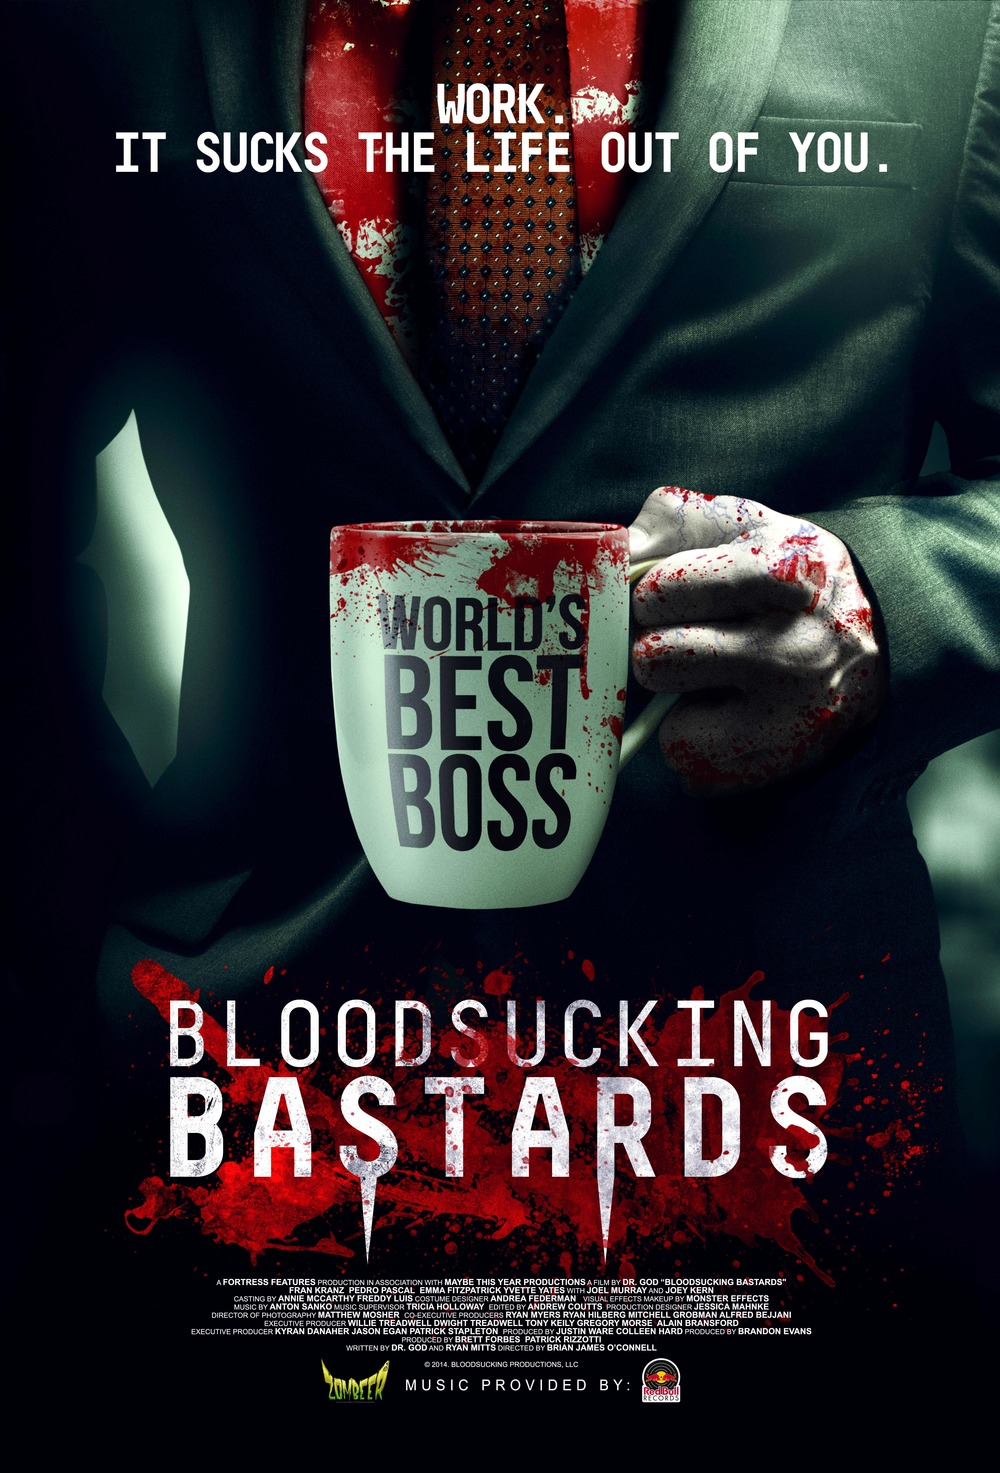 BloodsuckingBastardsPOSTER